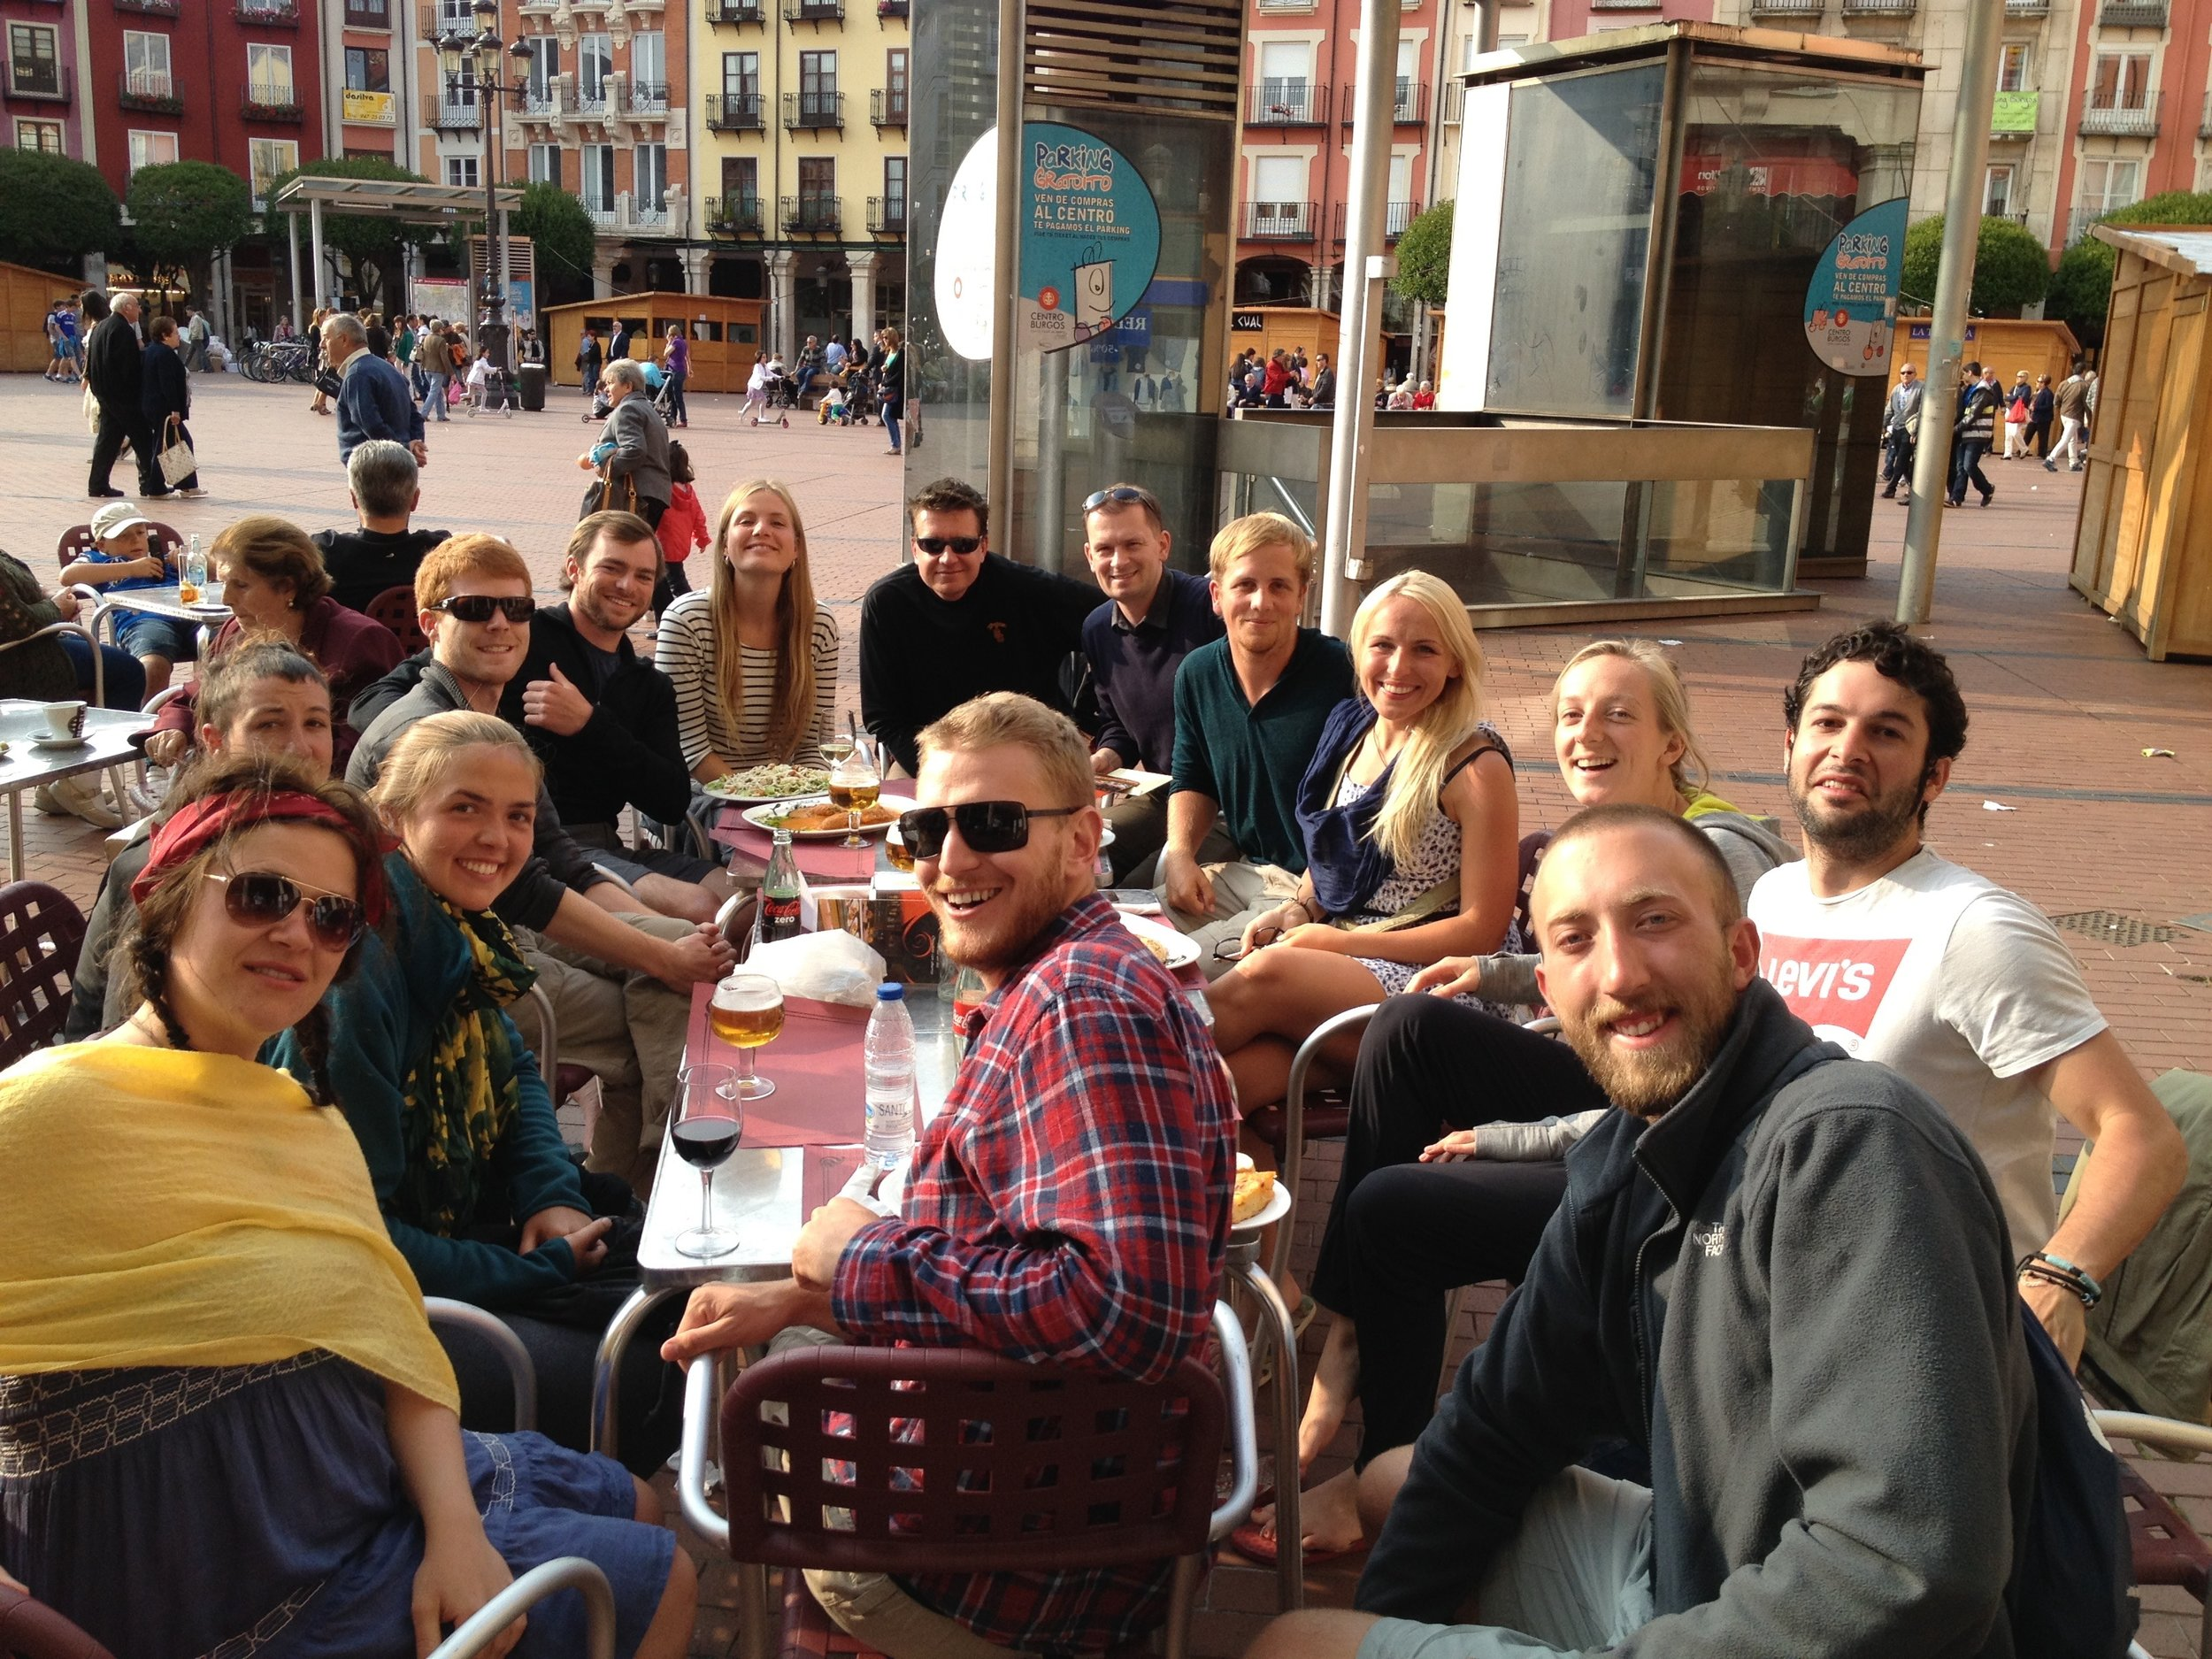 Making friends from all over the world is one of the most enjoyable parts of the Camino experience.